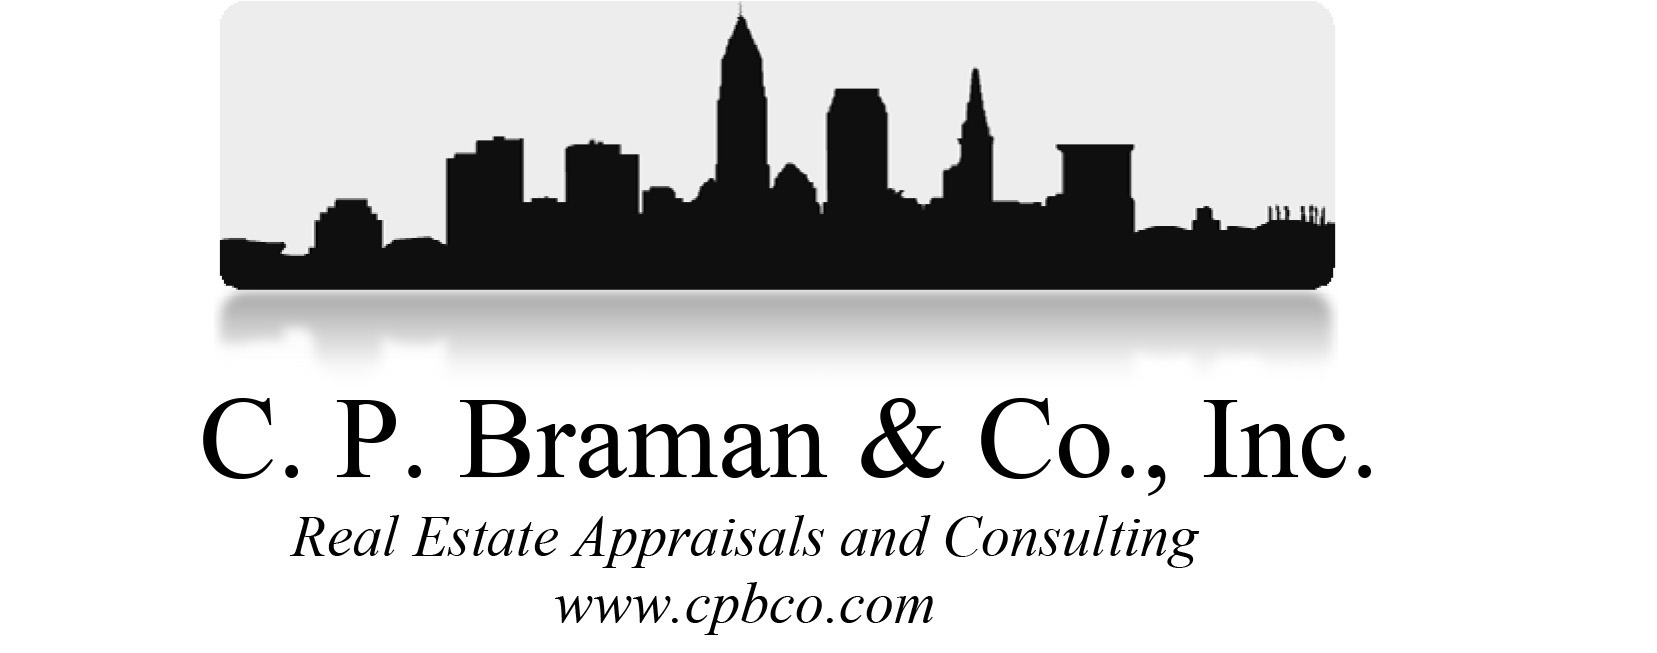 C.P. Braman & Co., Inc.